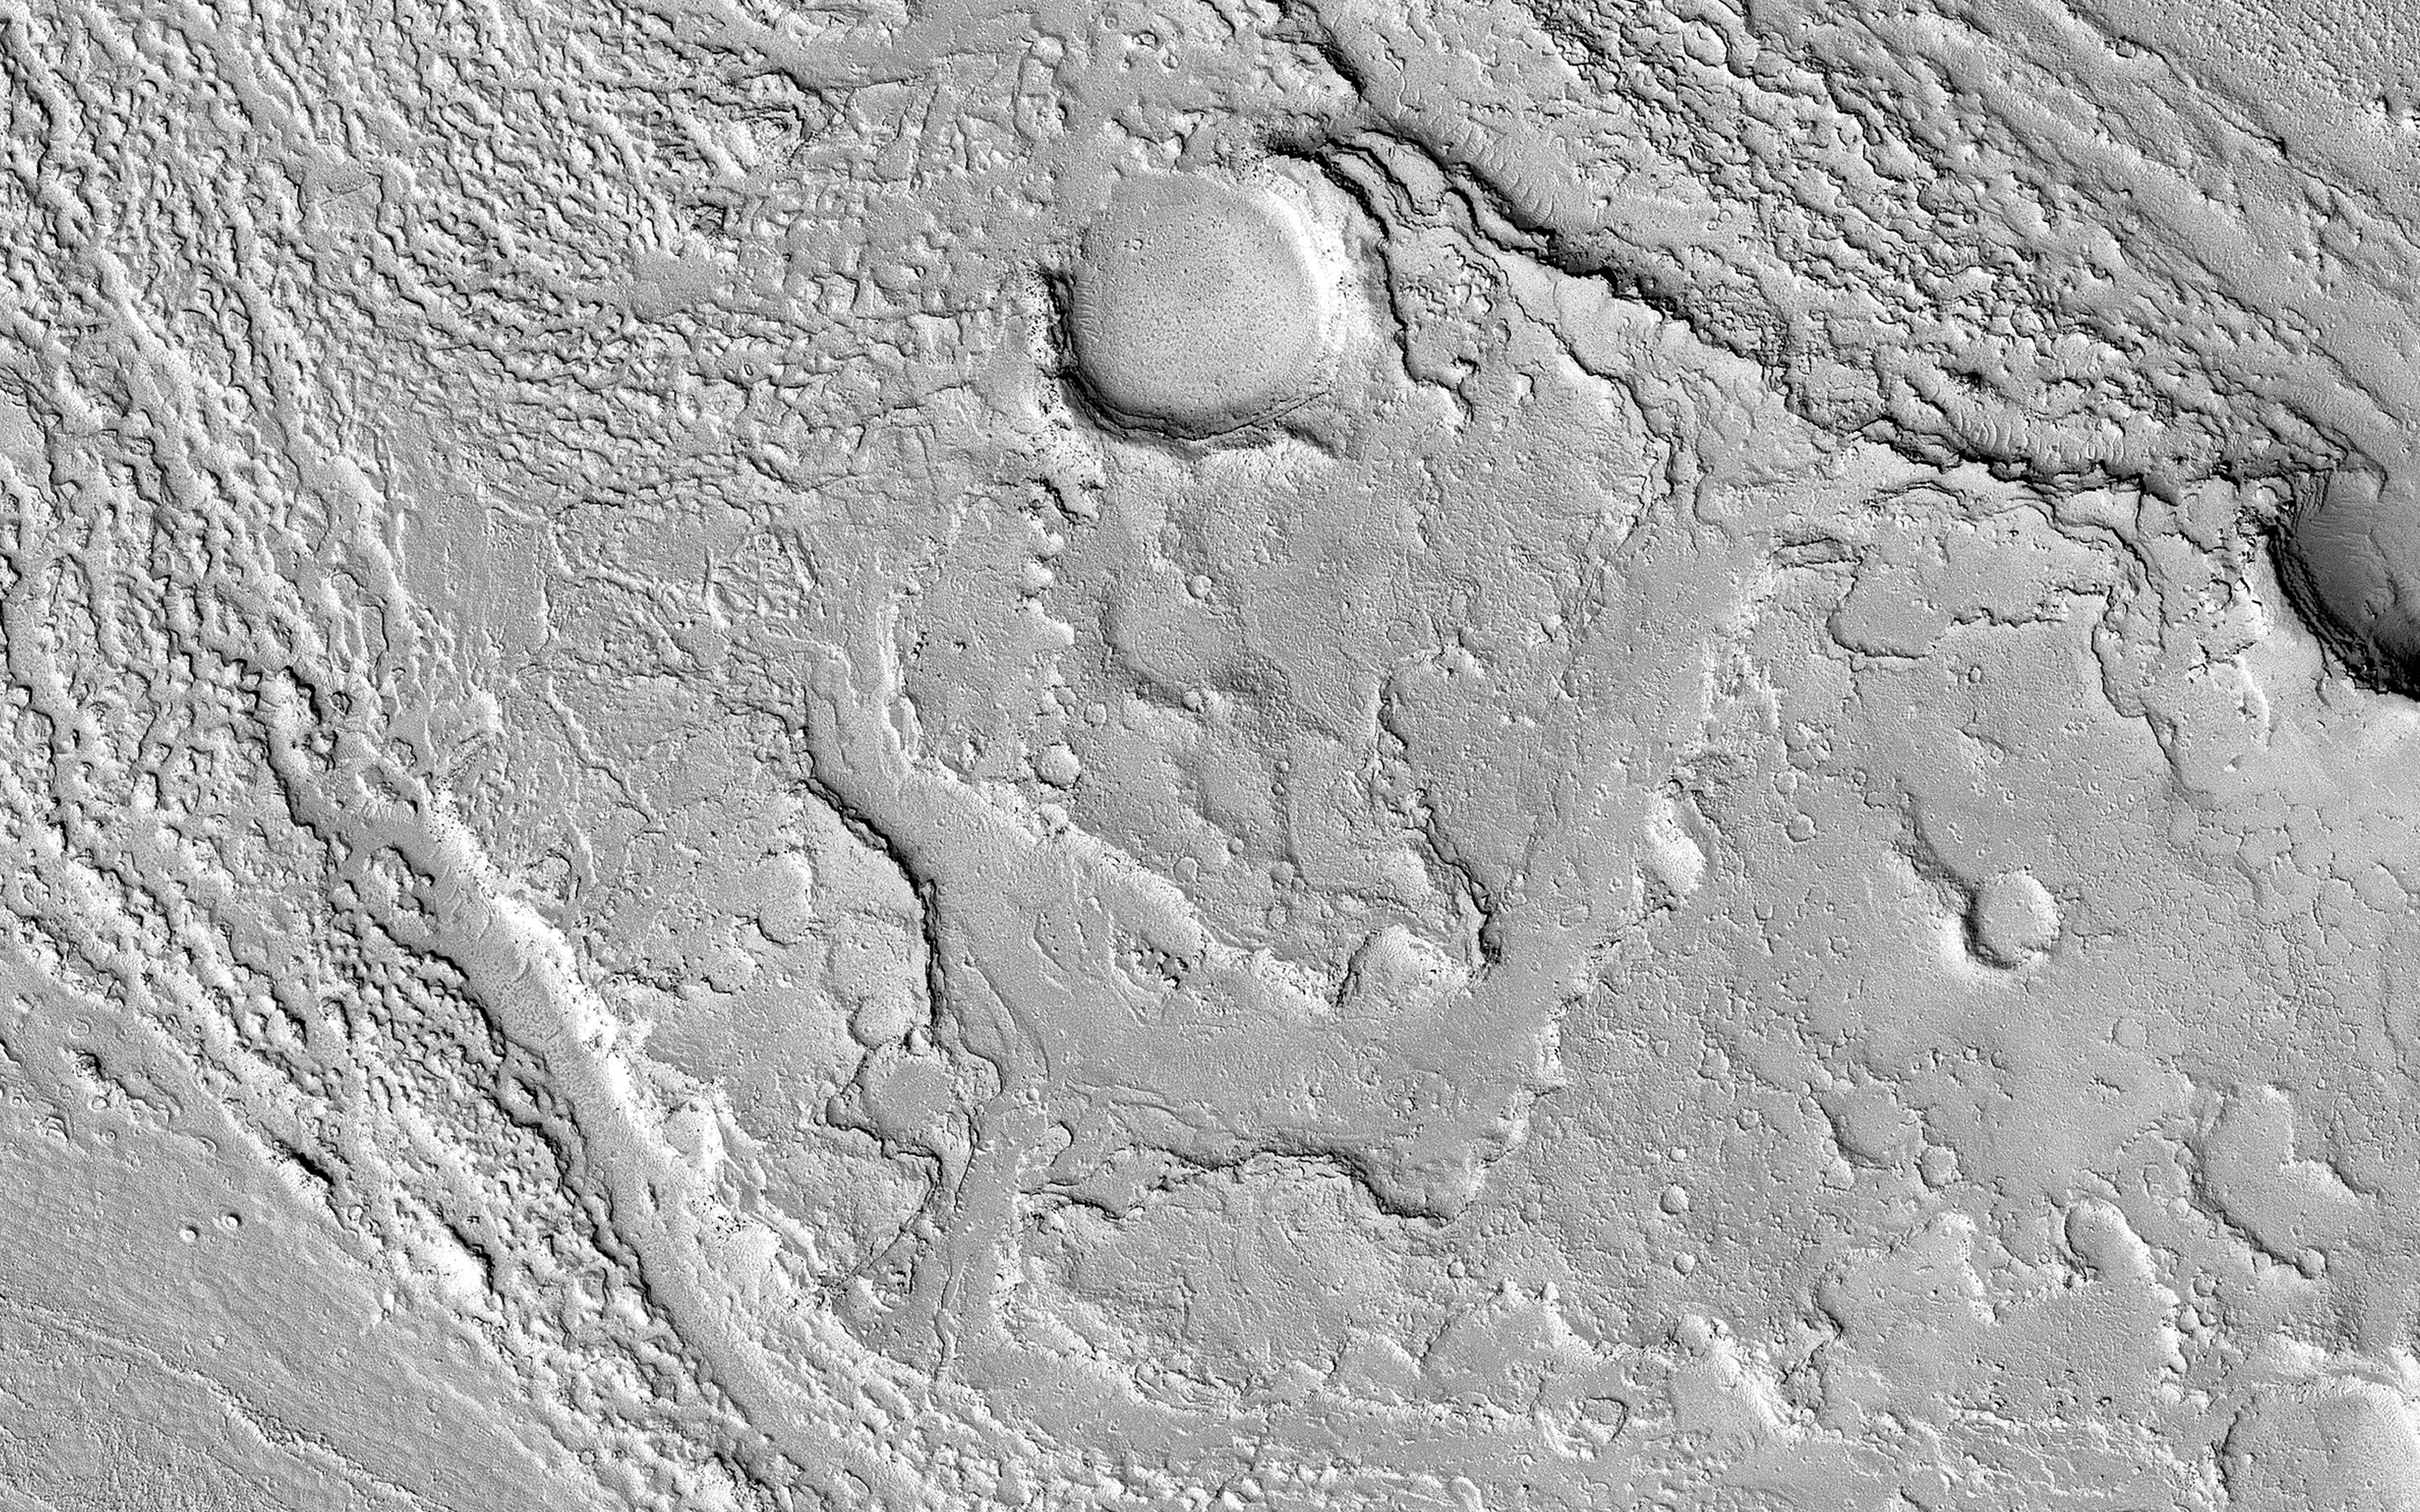 This image acquired on December 9, 2018 by NASAs Mars Reconnaissance Orbiter, shows Athabasca Valles with lava flows originating from Elysium Mons to the northwest.